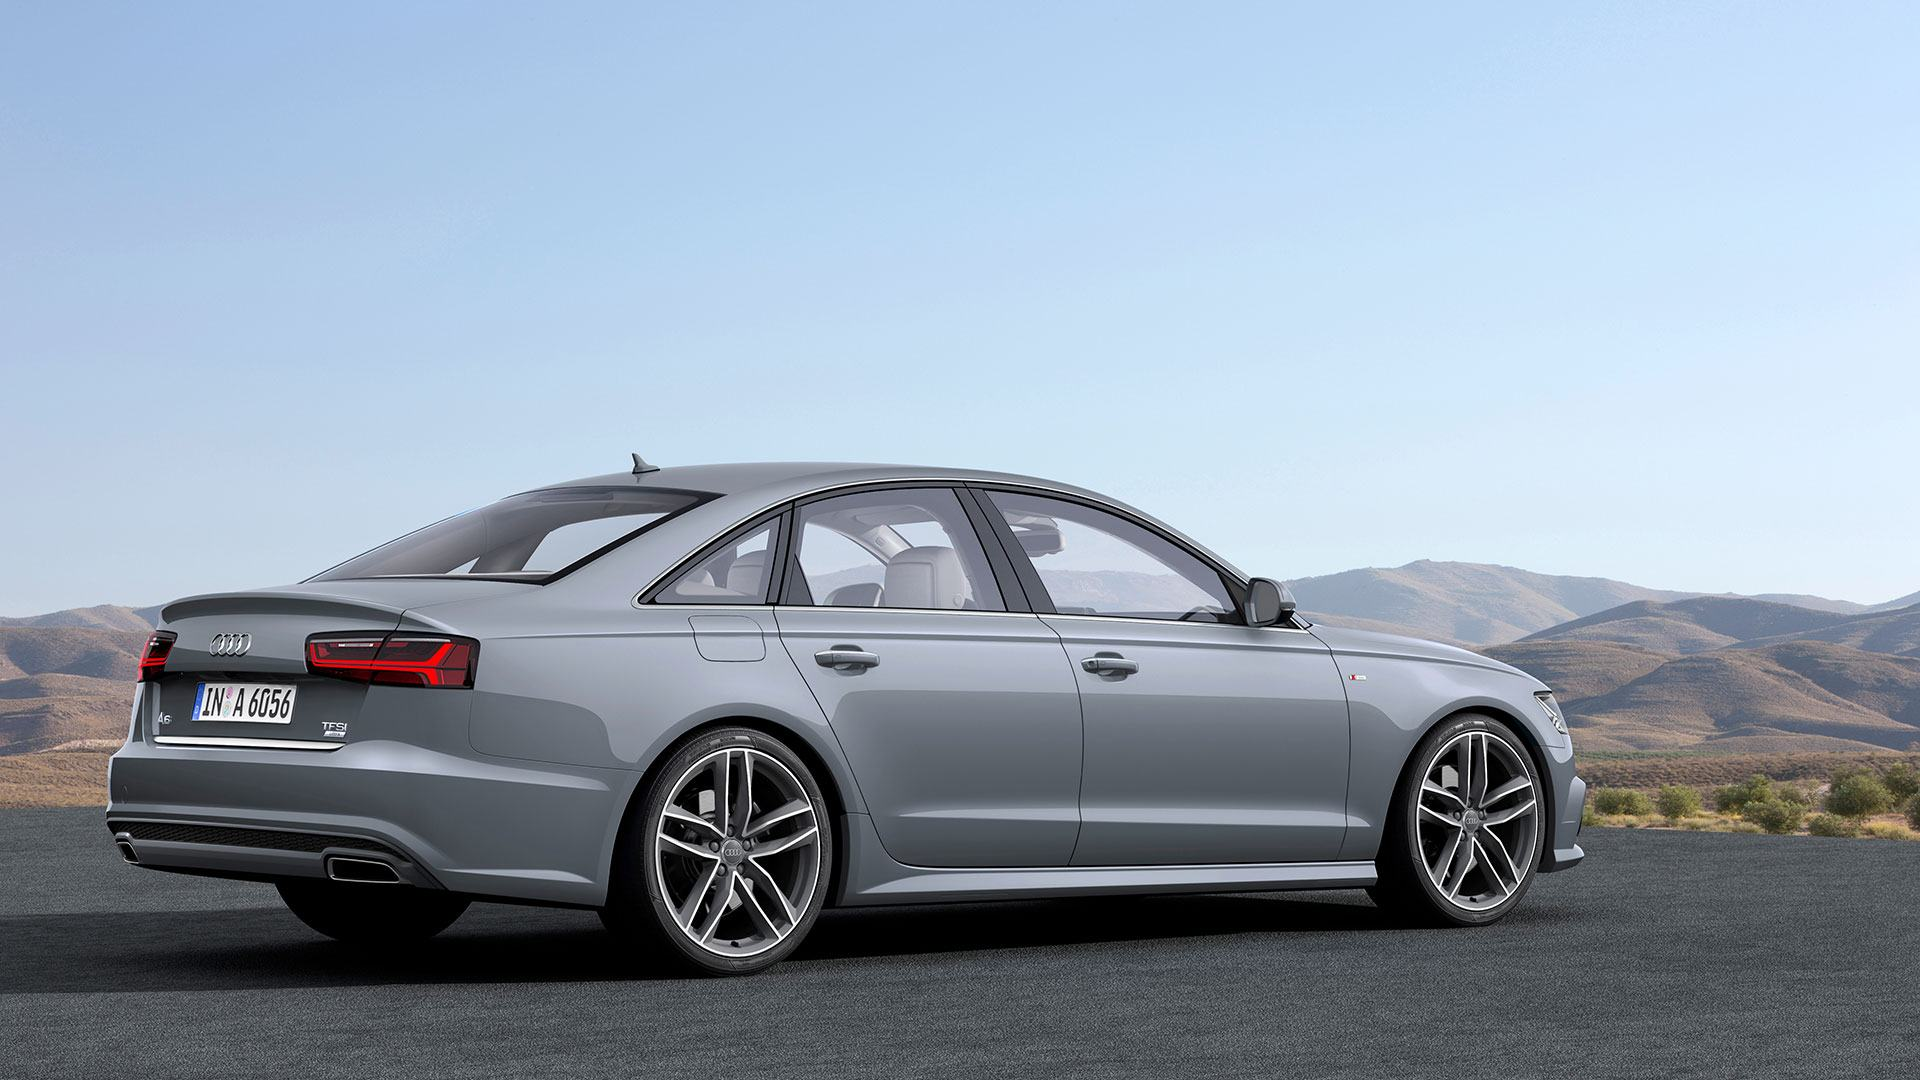 Audi Langley - Exquisite quality